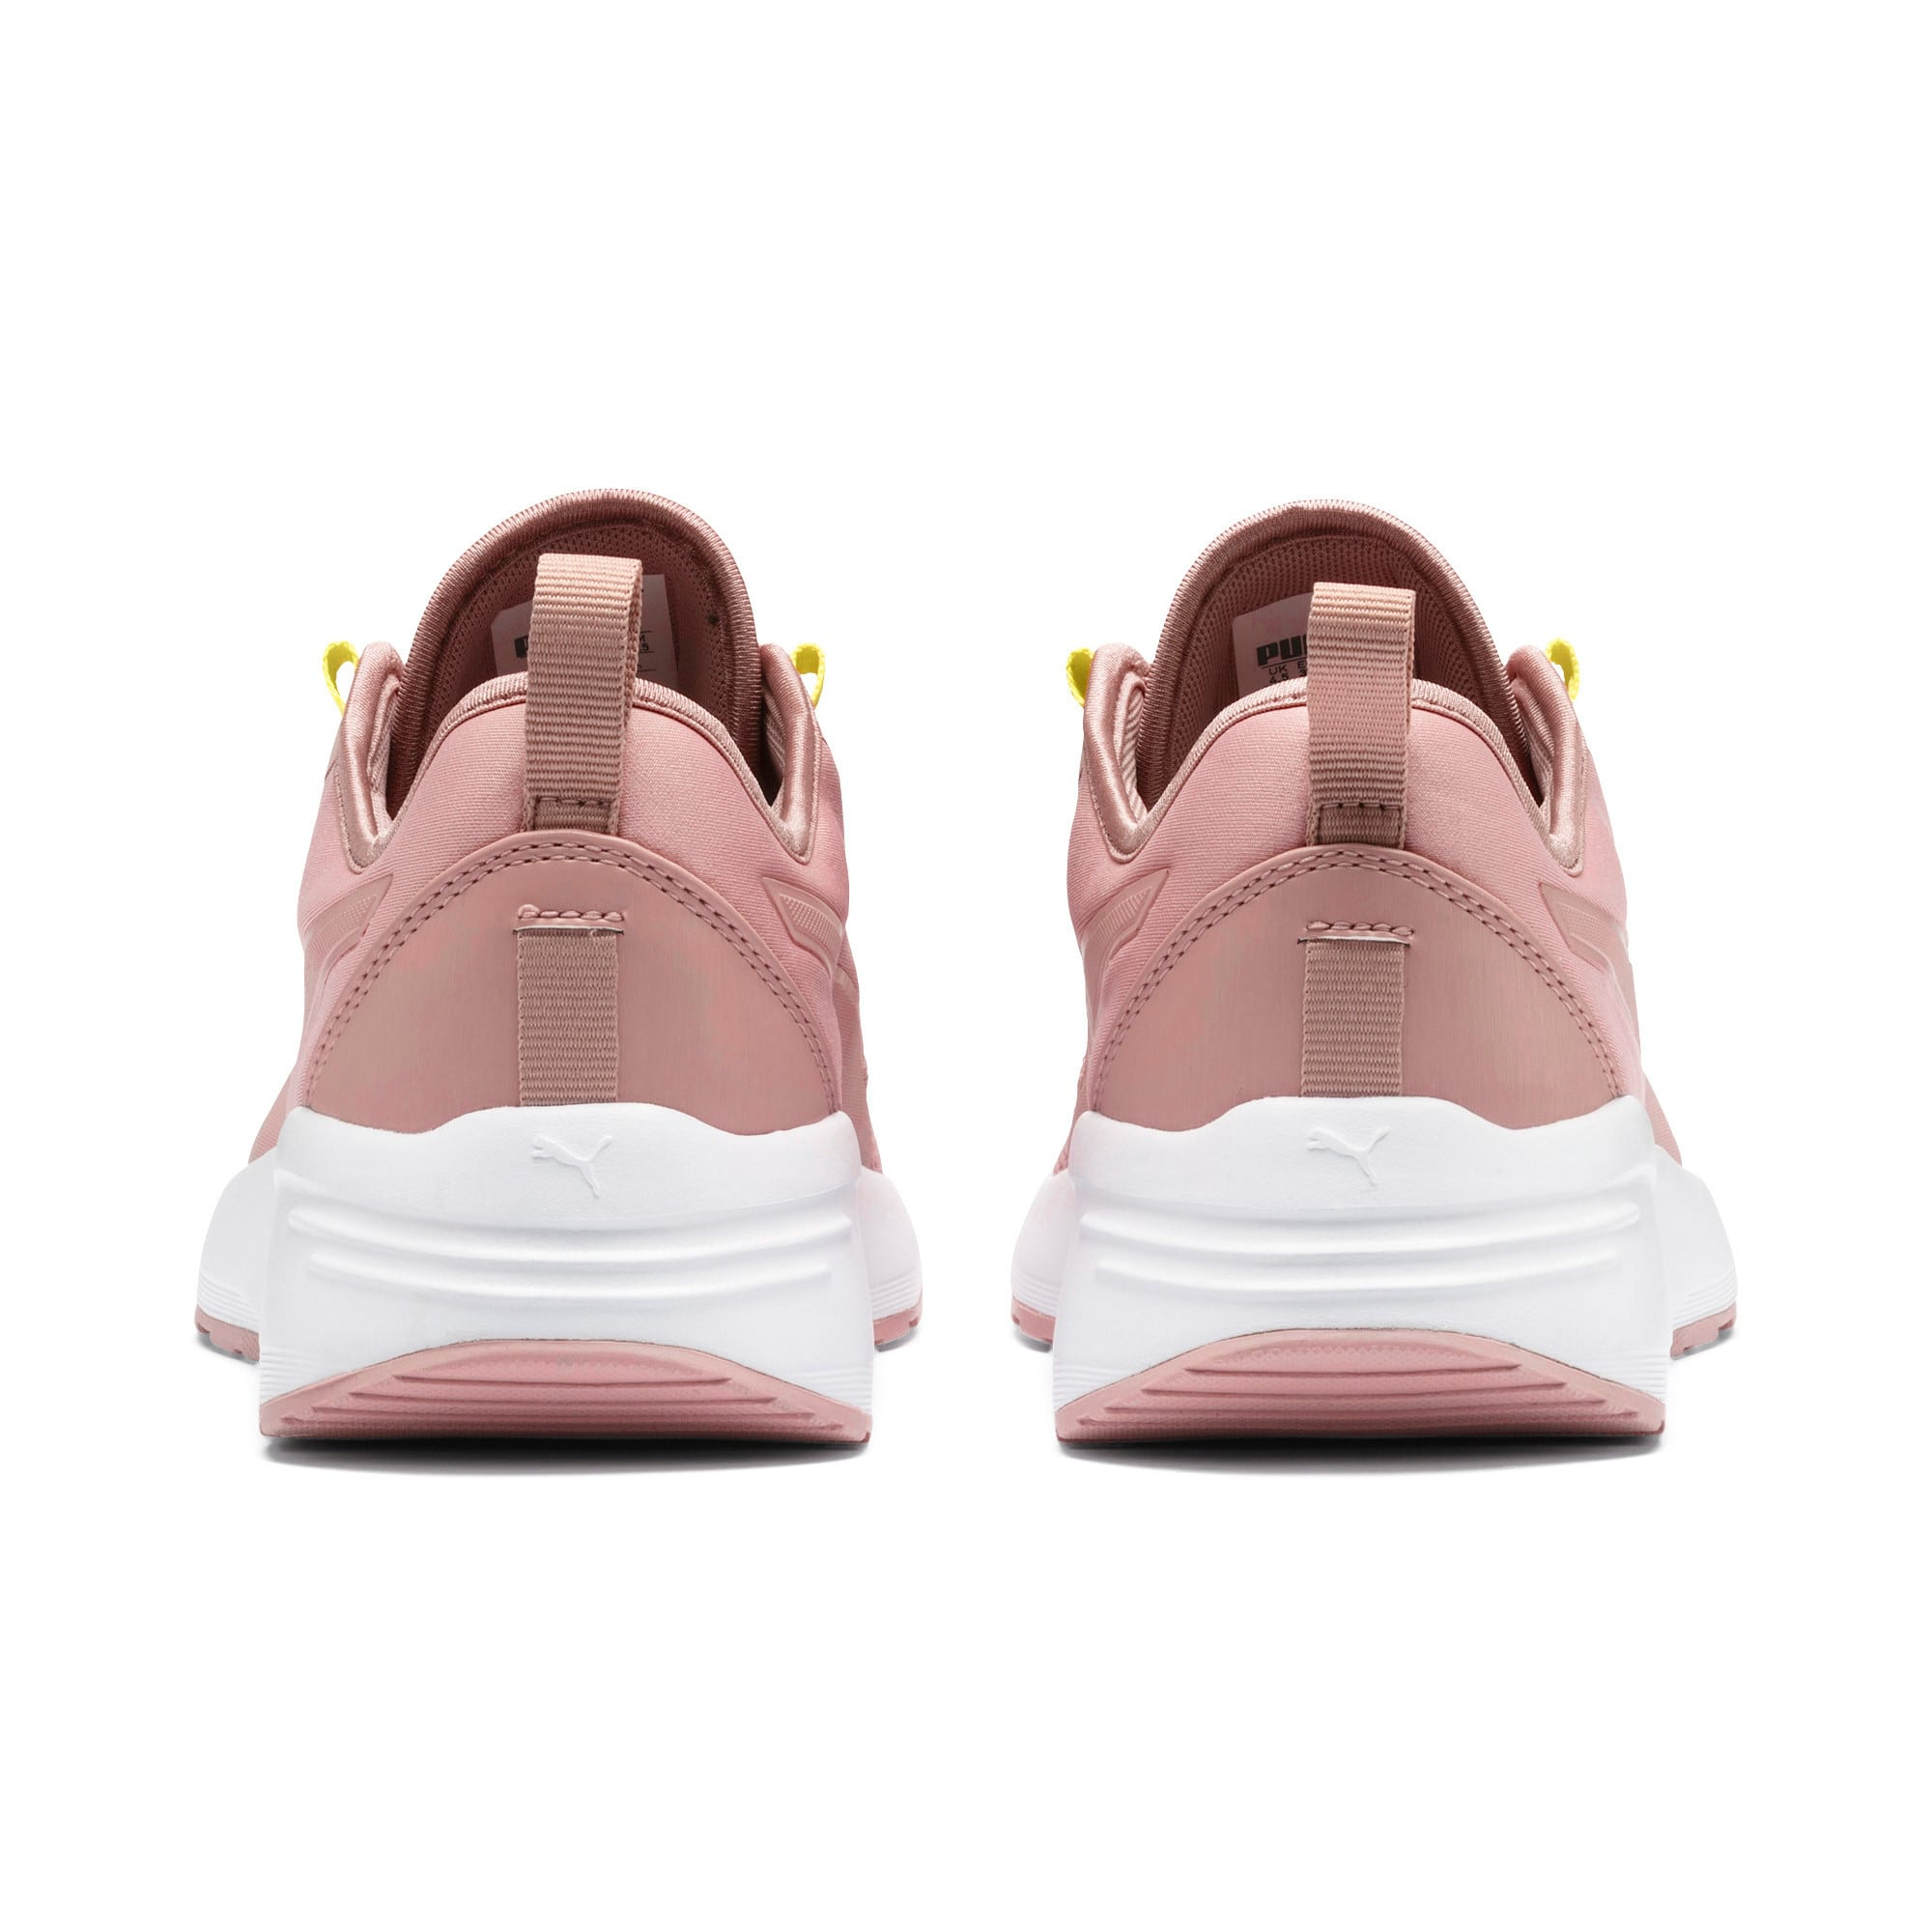 Thumbnail 4 of Sirena Sport Shift Women's Sneakers, Bridal Rose-Yellow Alert, medium